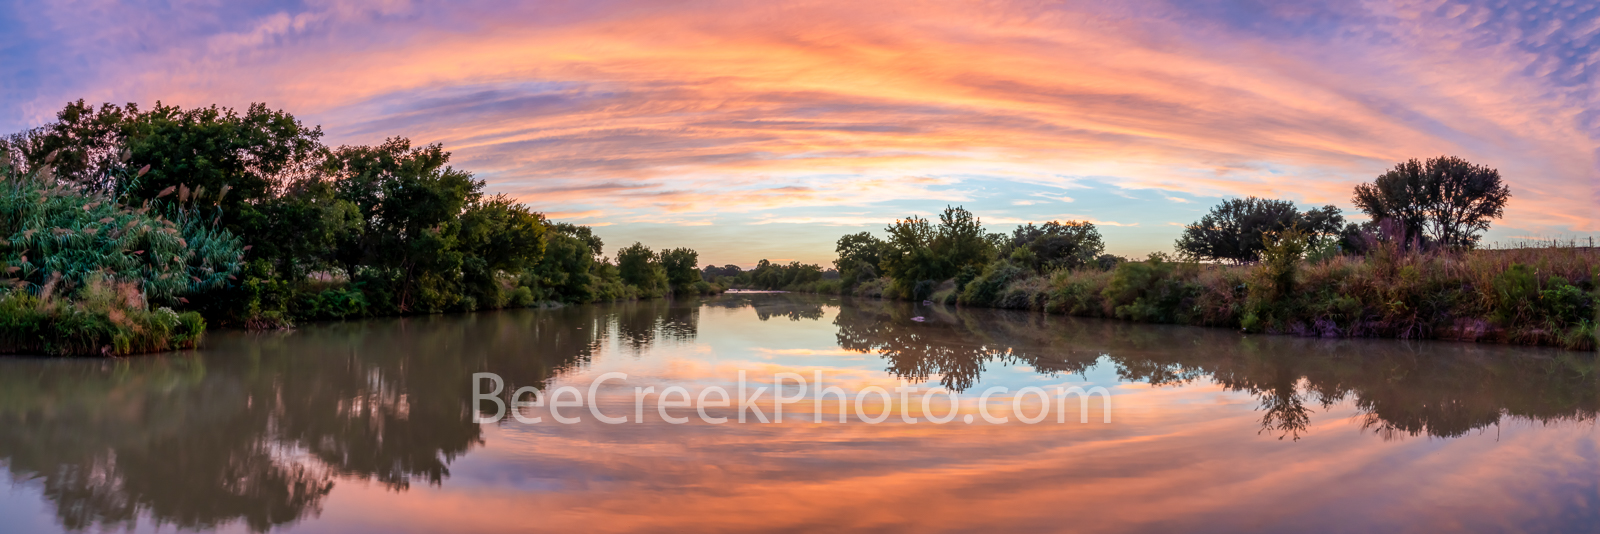 Vibrant Texas Hill Country Sunset Panorama - This was one of those wow sunset captures Texas hill country sunset panorama along...